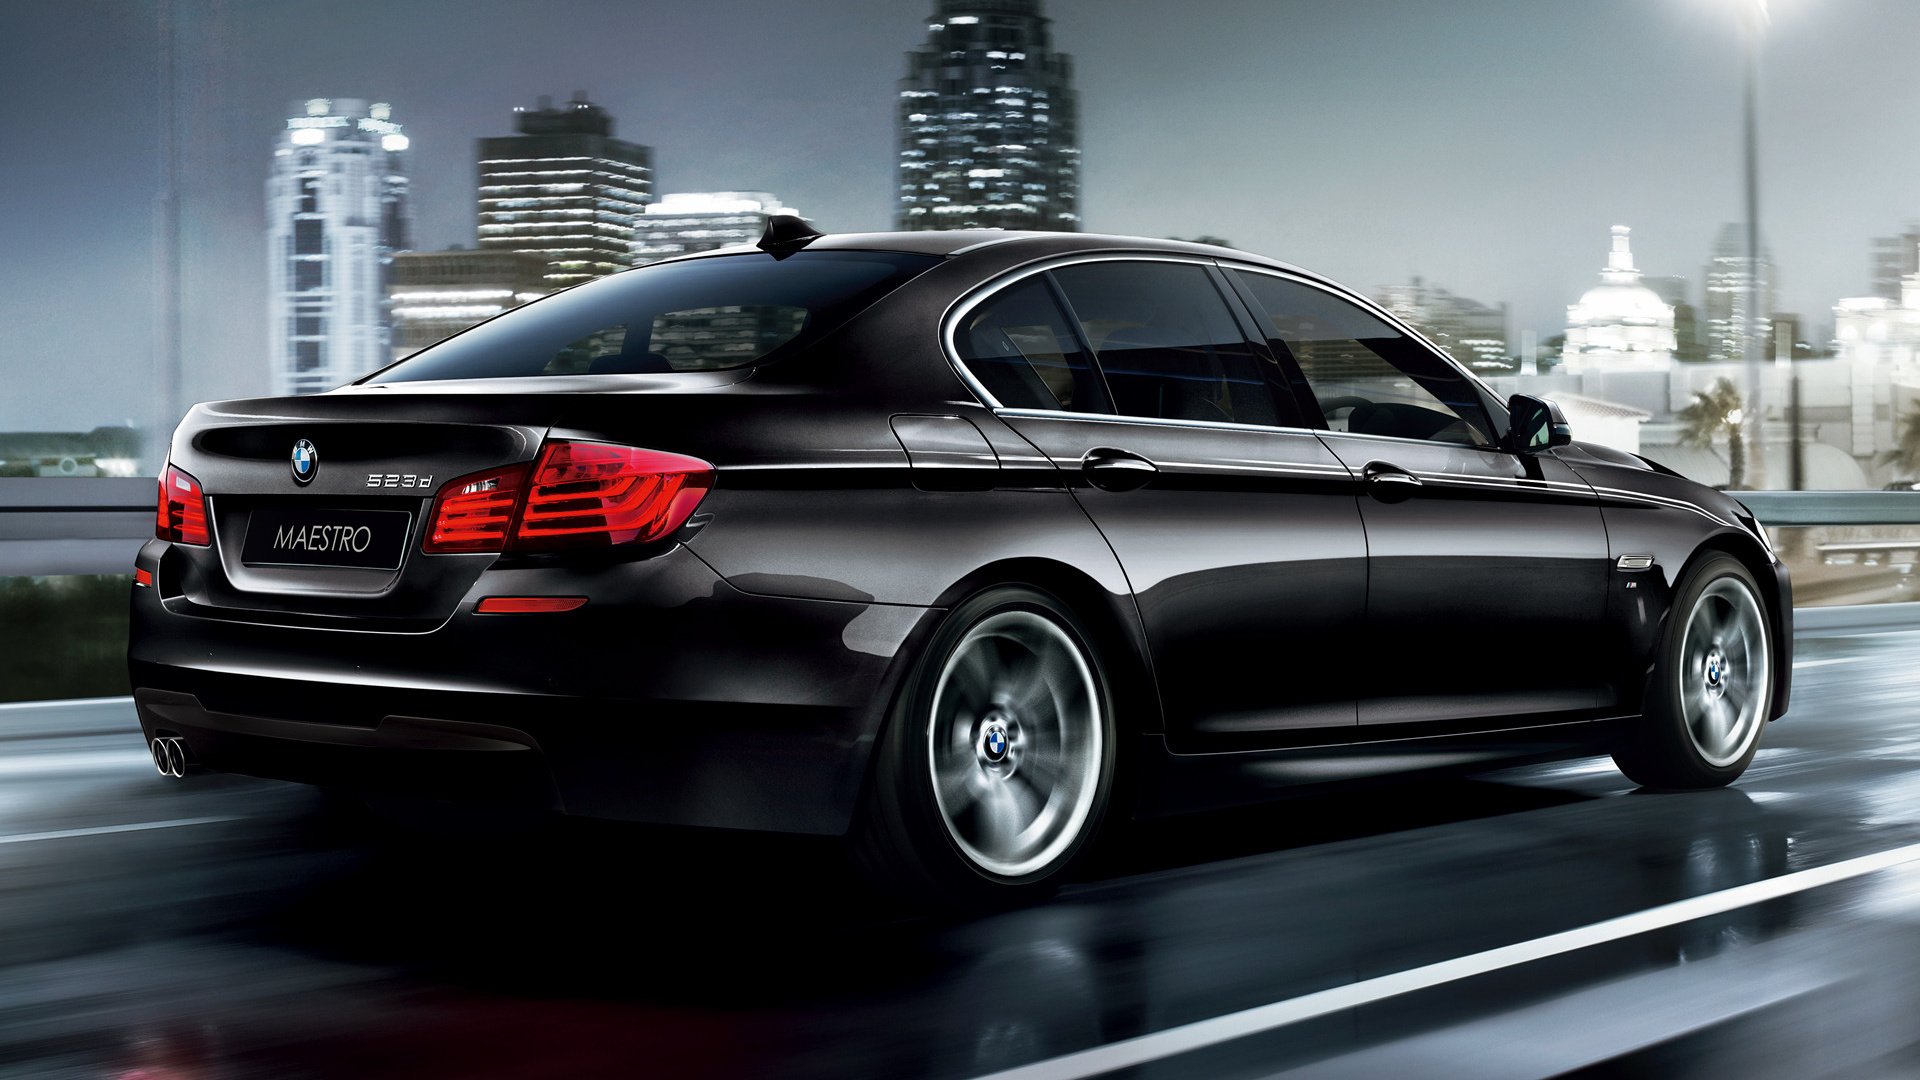 BMW 5 Series Maestro (2015) JP Wallpapers and HD Images ...